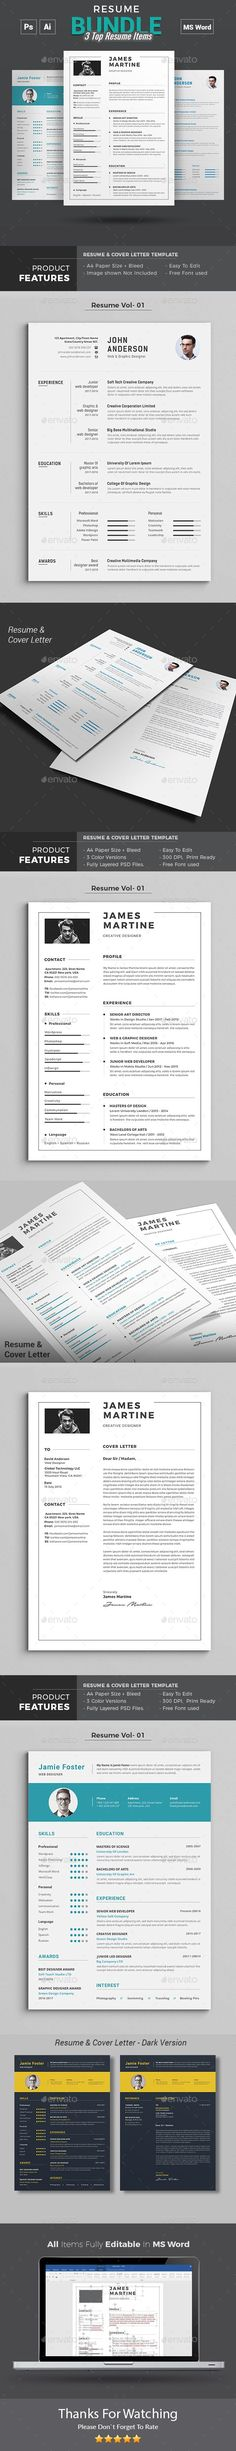 mental health counselor resume%0A Peckham  Free Cover Letter Template  Green   Classic resume templates    Pinterest   Cv template  Resume cv and Template